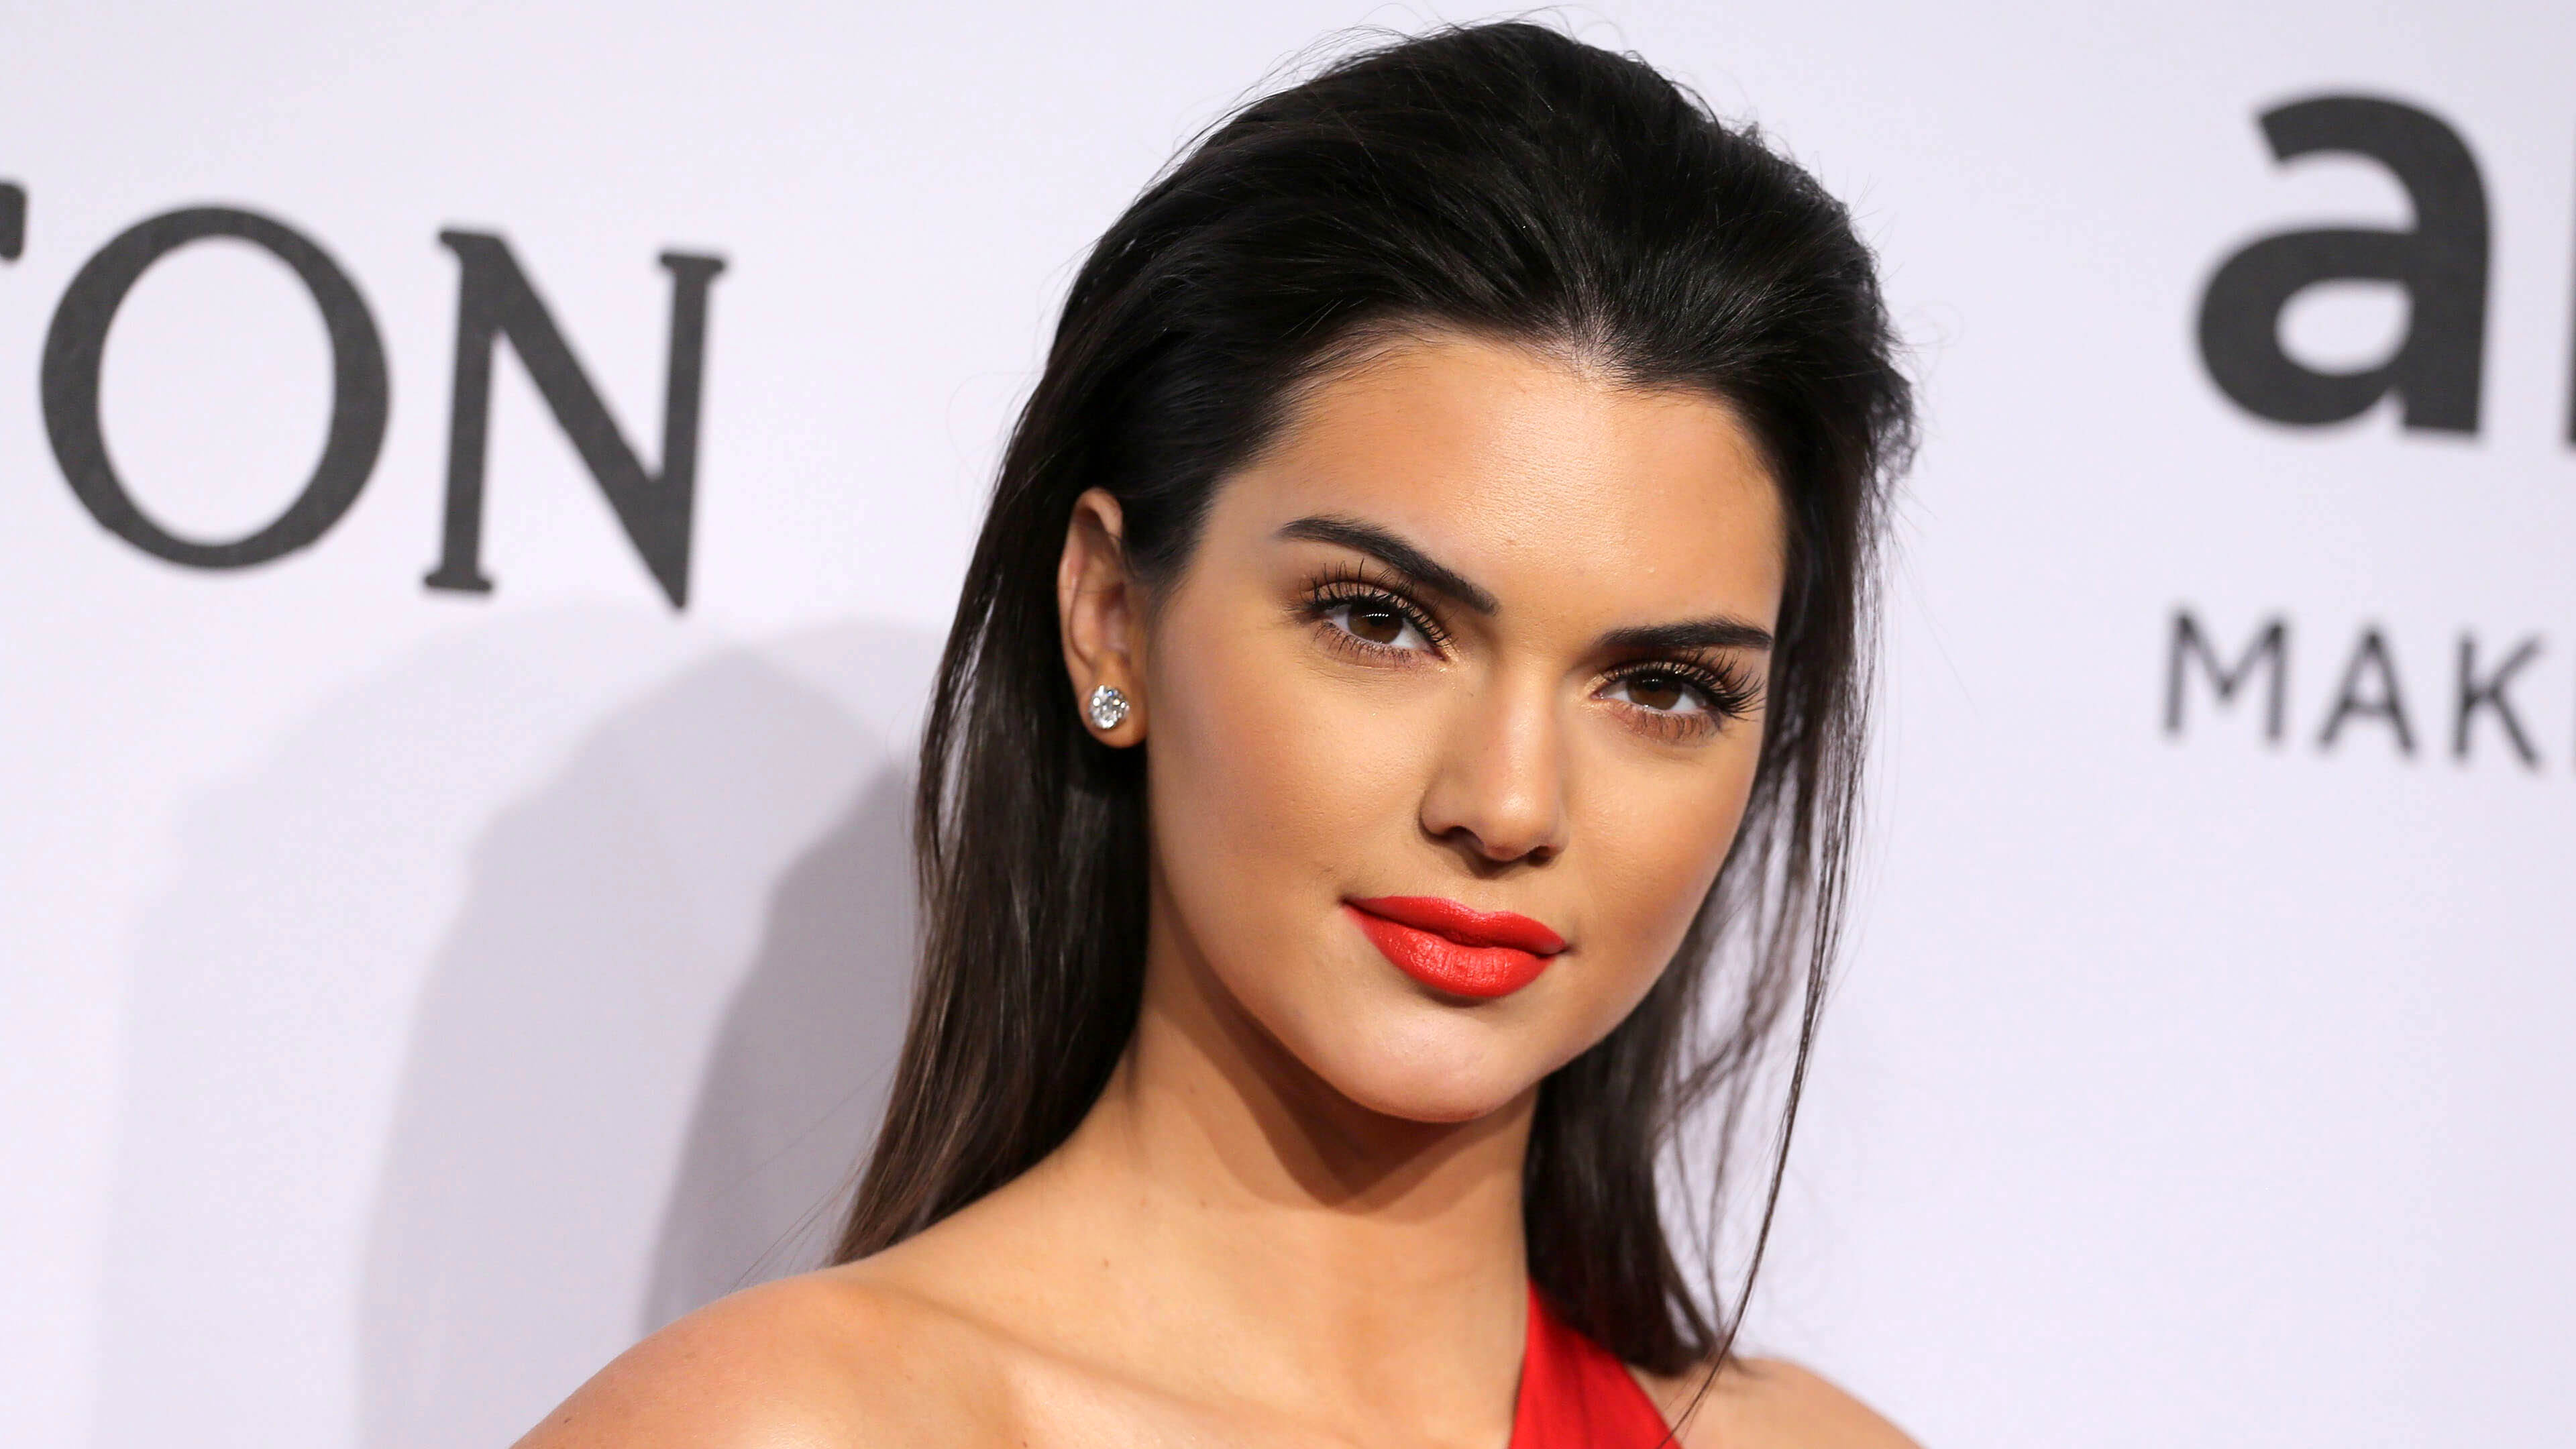 Kendall Jenner Archives - Hdwallsourcecom-6216